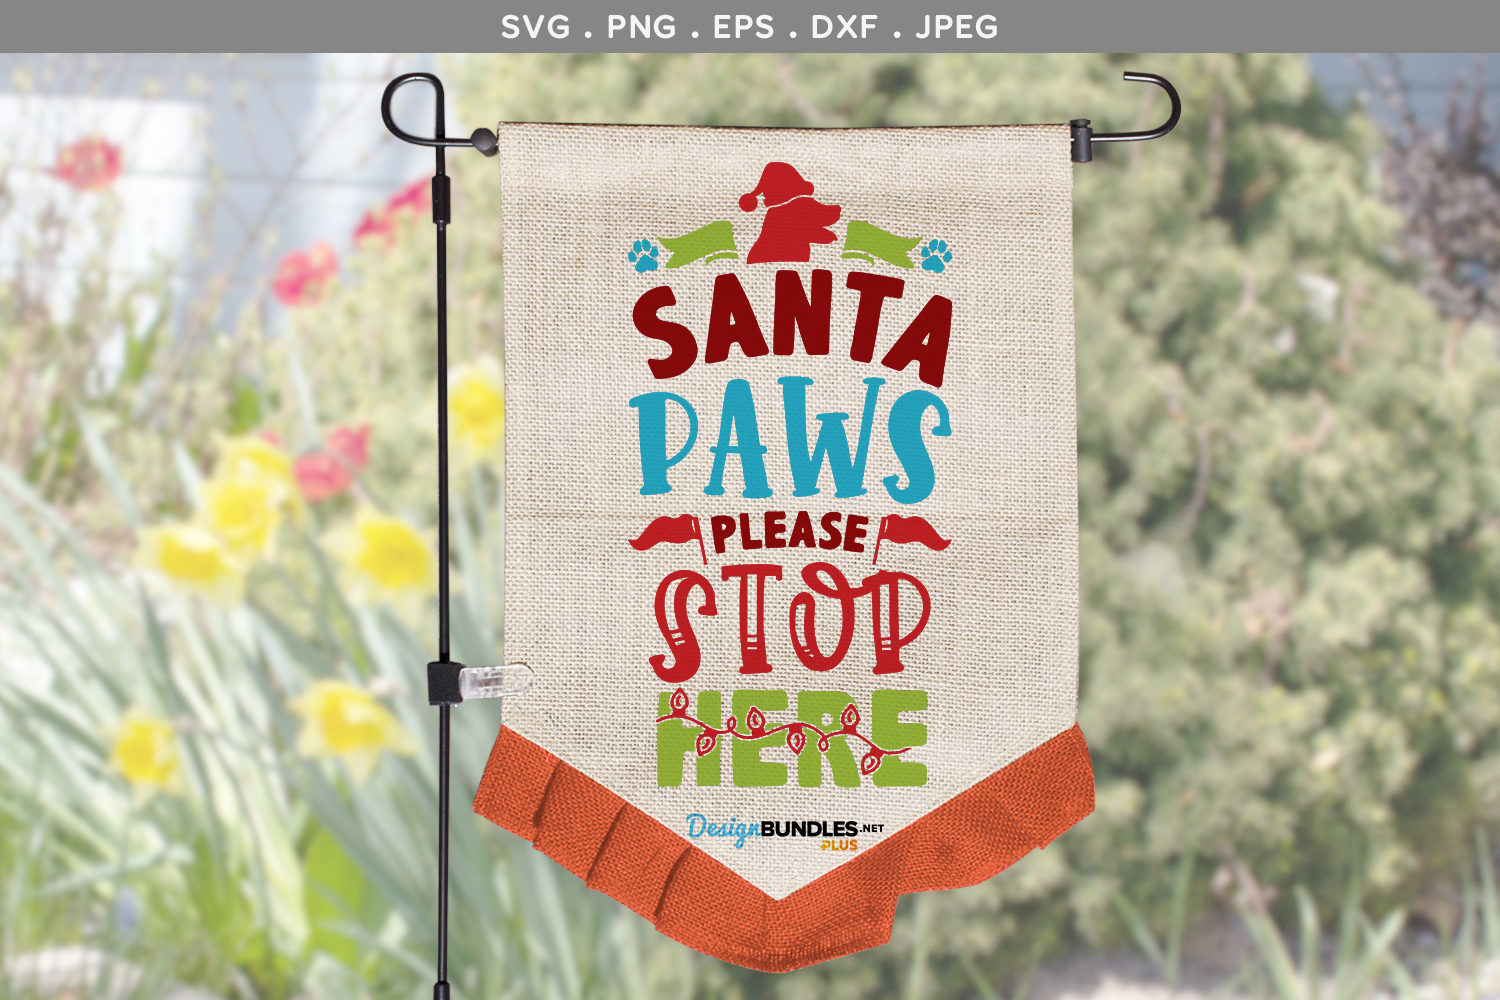 Santa Paws, Please stop here - svg, printable example image 1